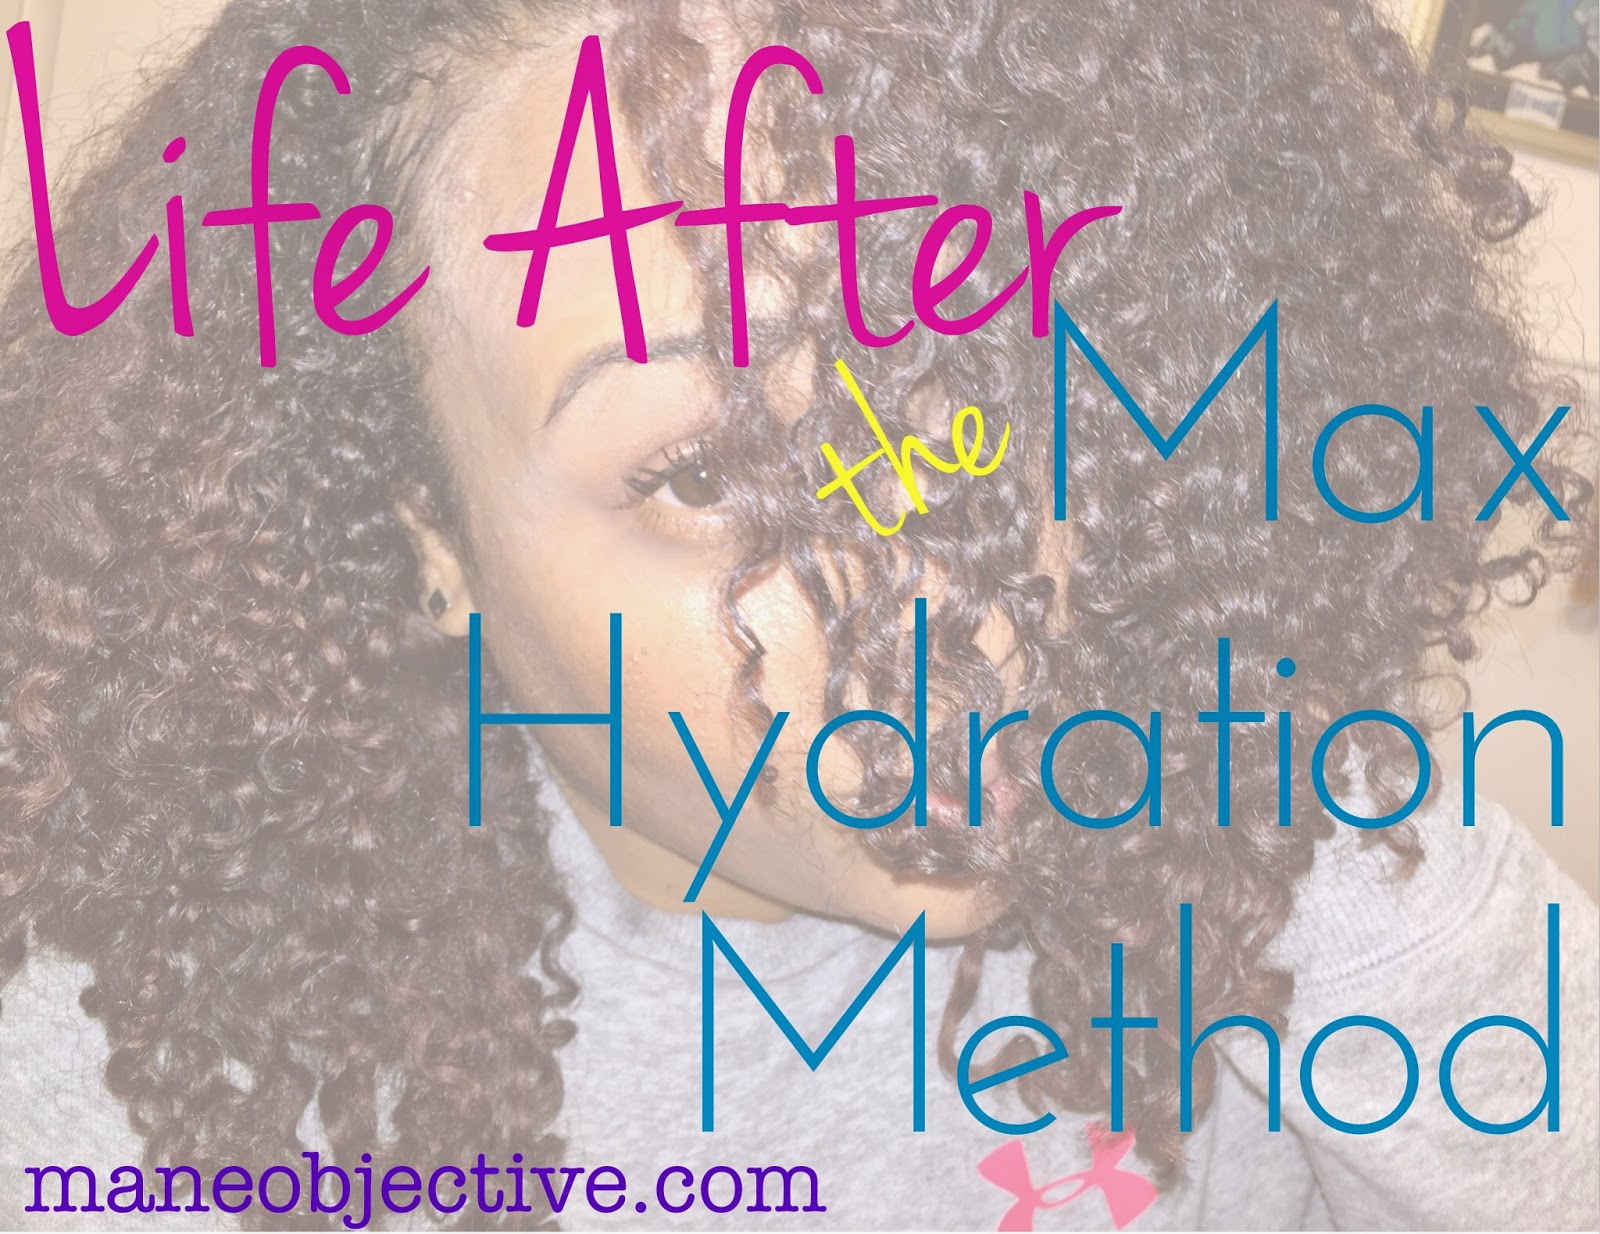 Life After the Max Hydration Method